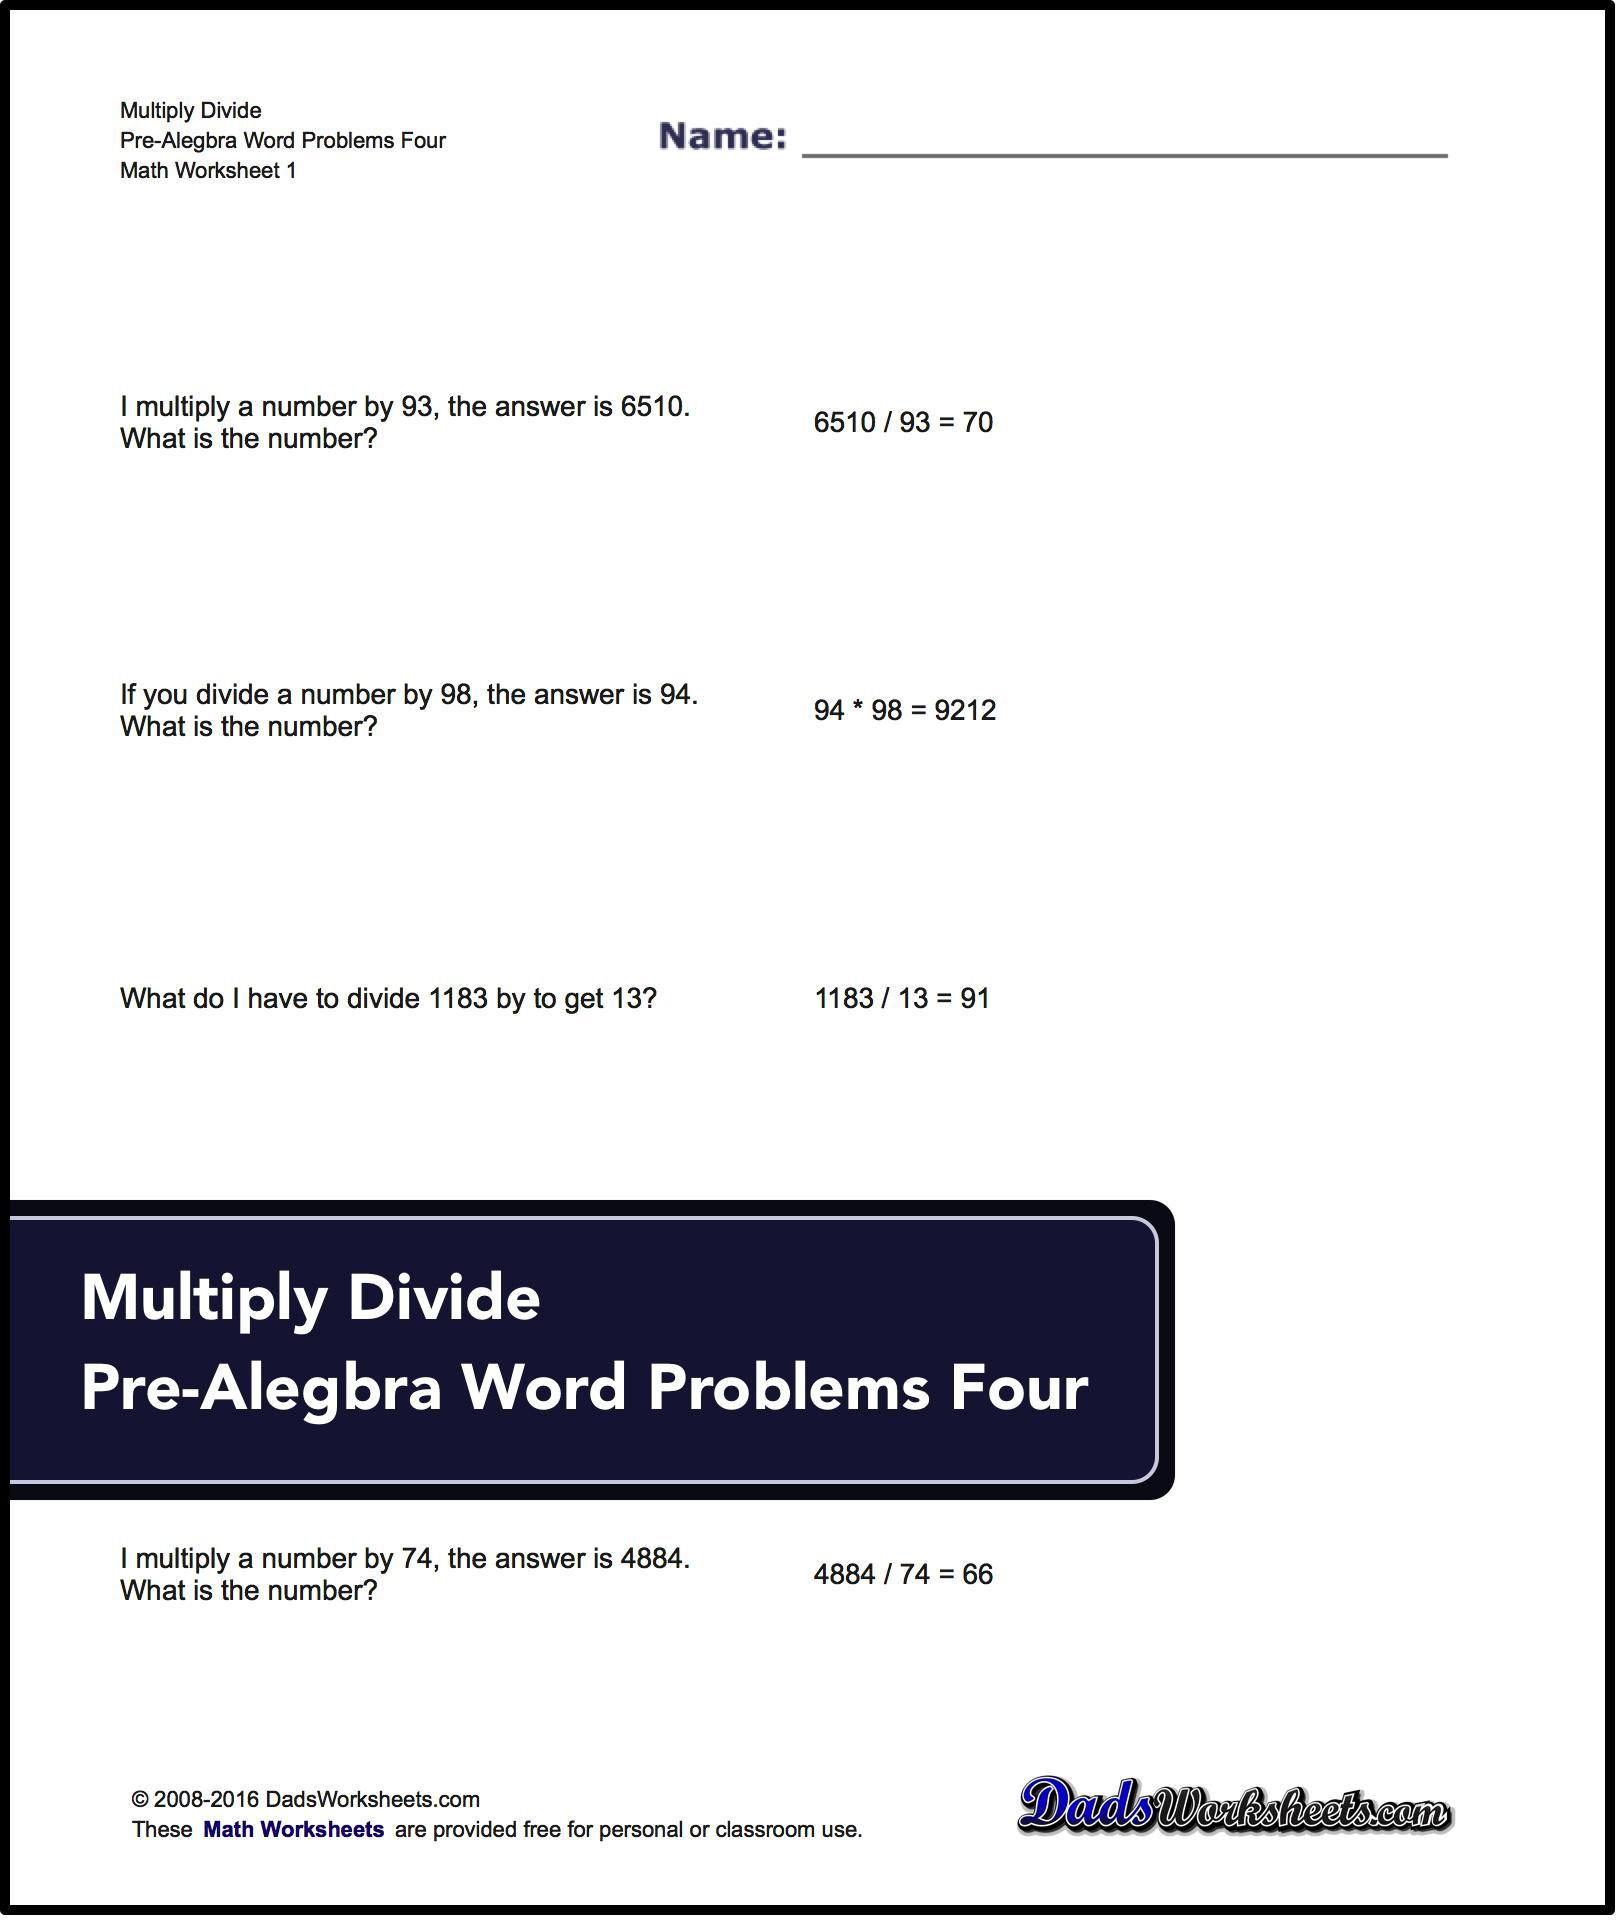 Multiply And Divide PreAlgebra Word Problems Multiply Divide